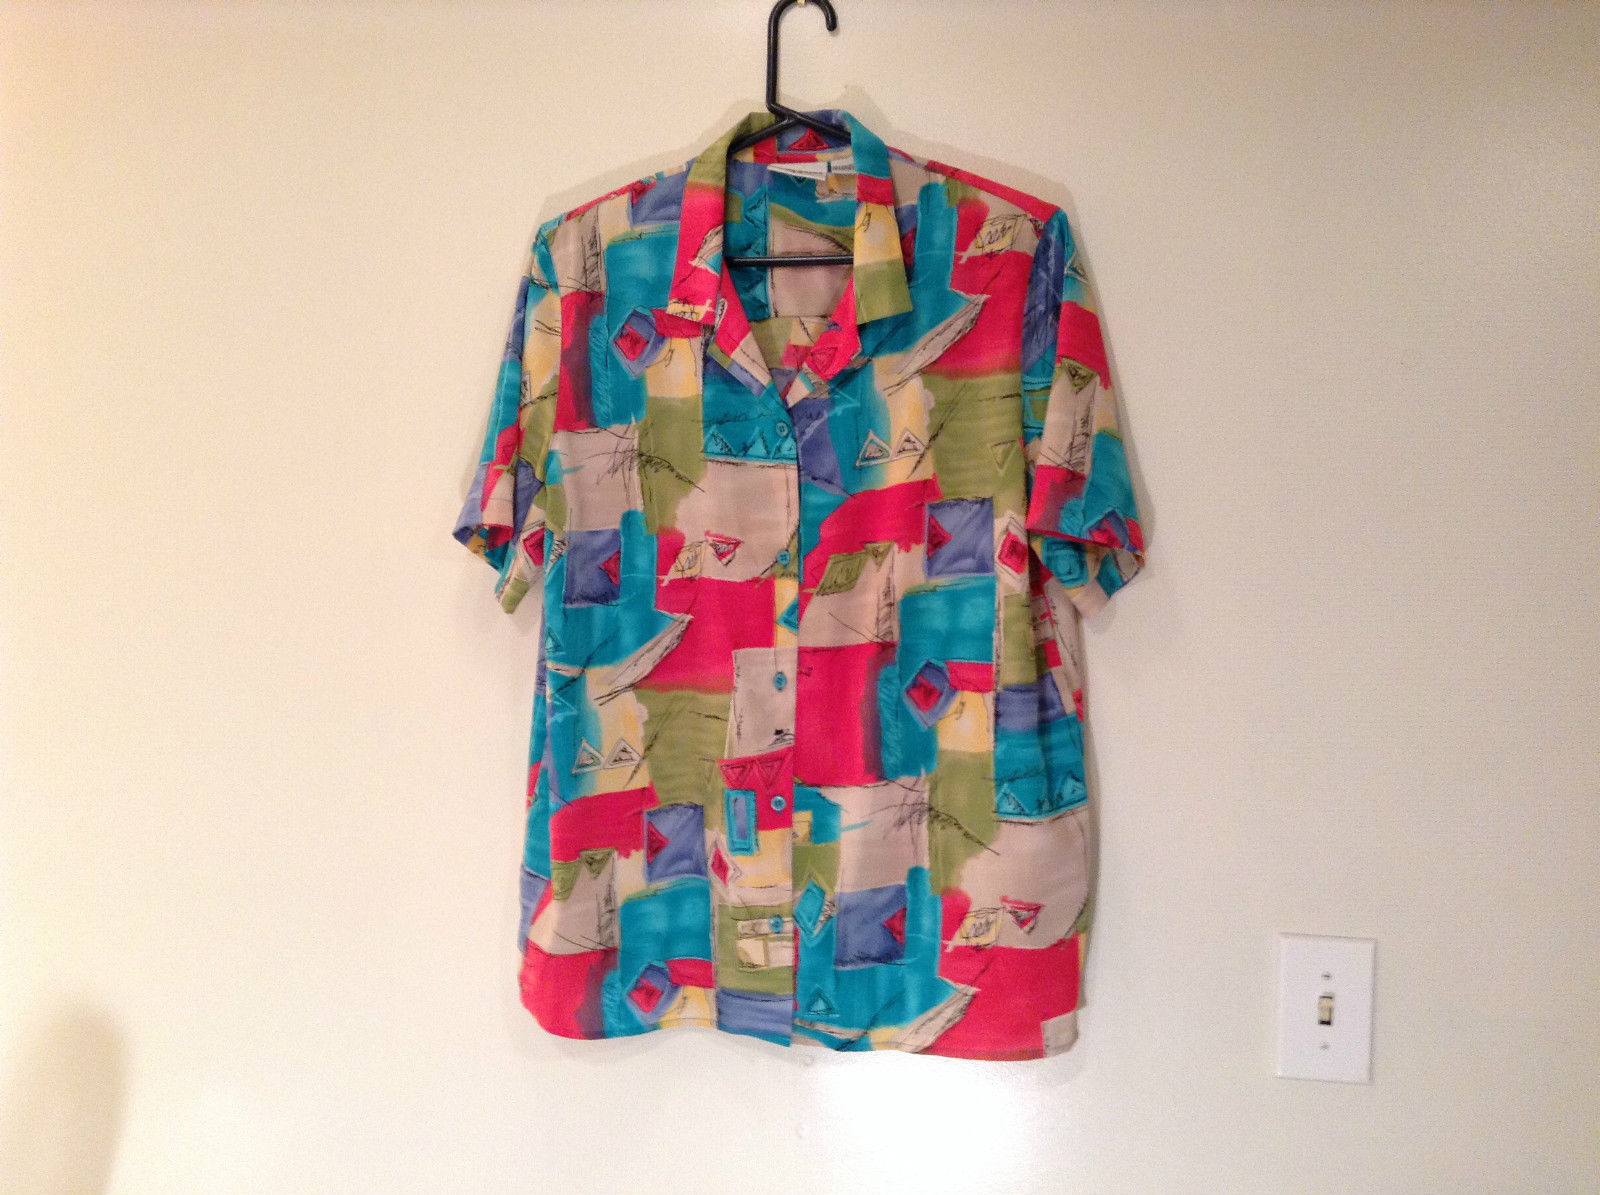 Multicolored Pattern Alfred Dunner Short Sleeve Button Up Shirt Size 18W